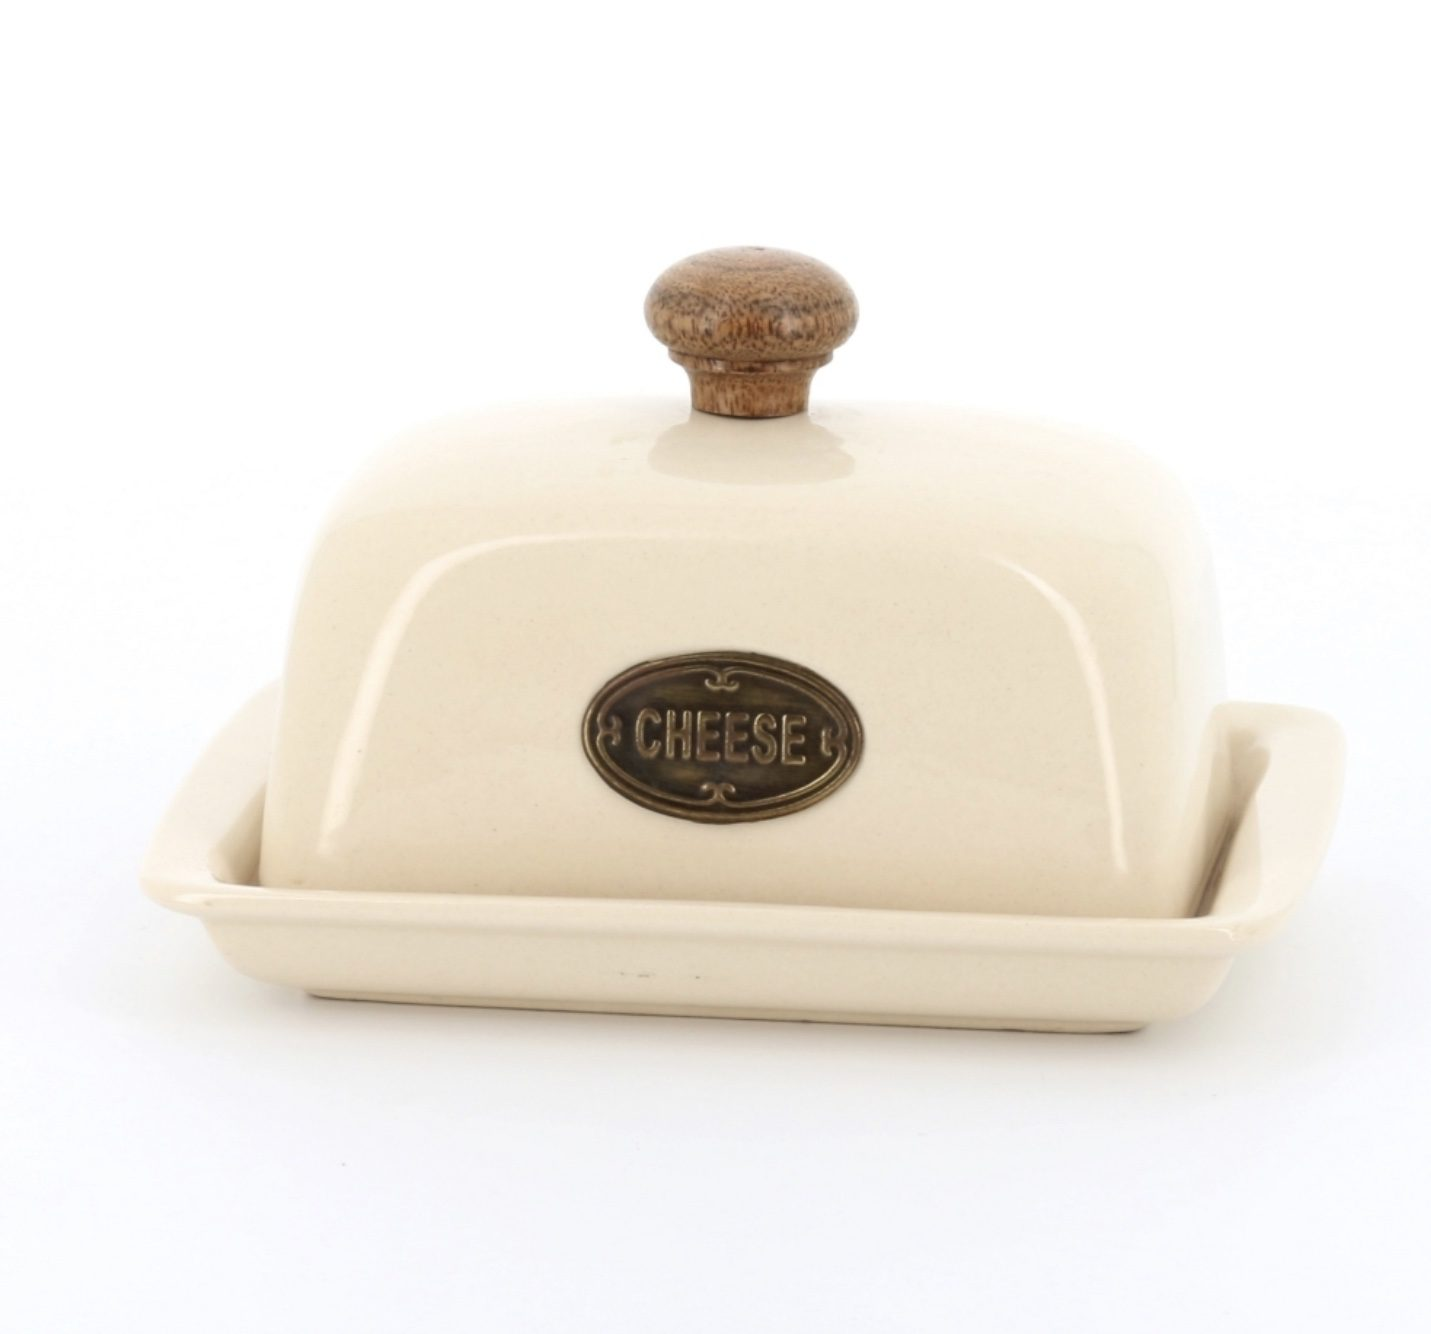 Ceramic covered cheese dish with wooden knob and metal cheese plaque